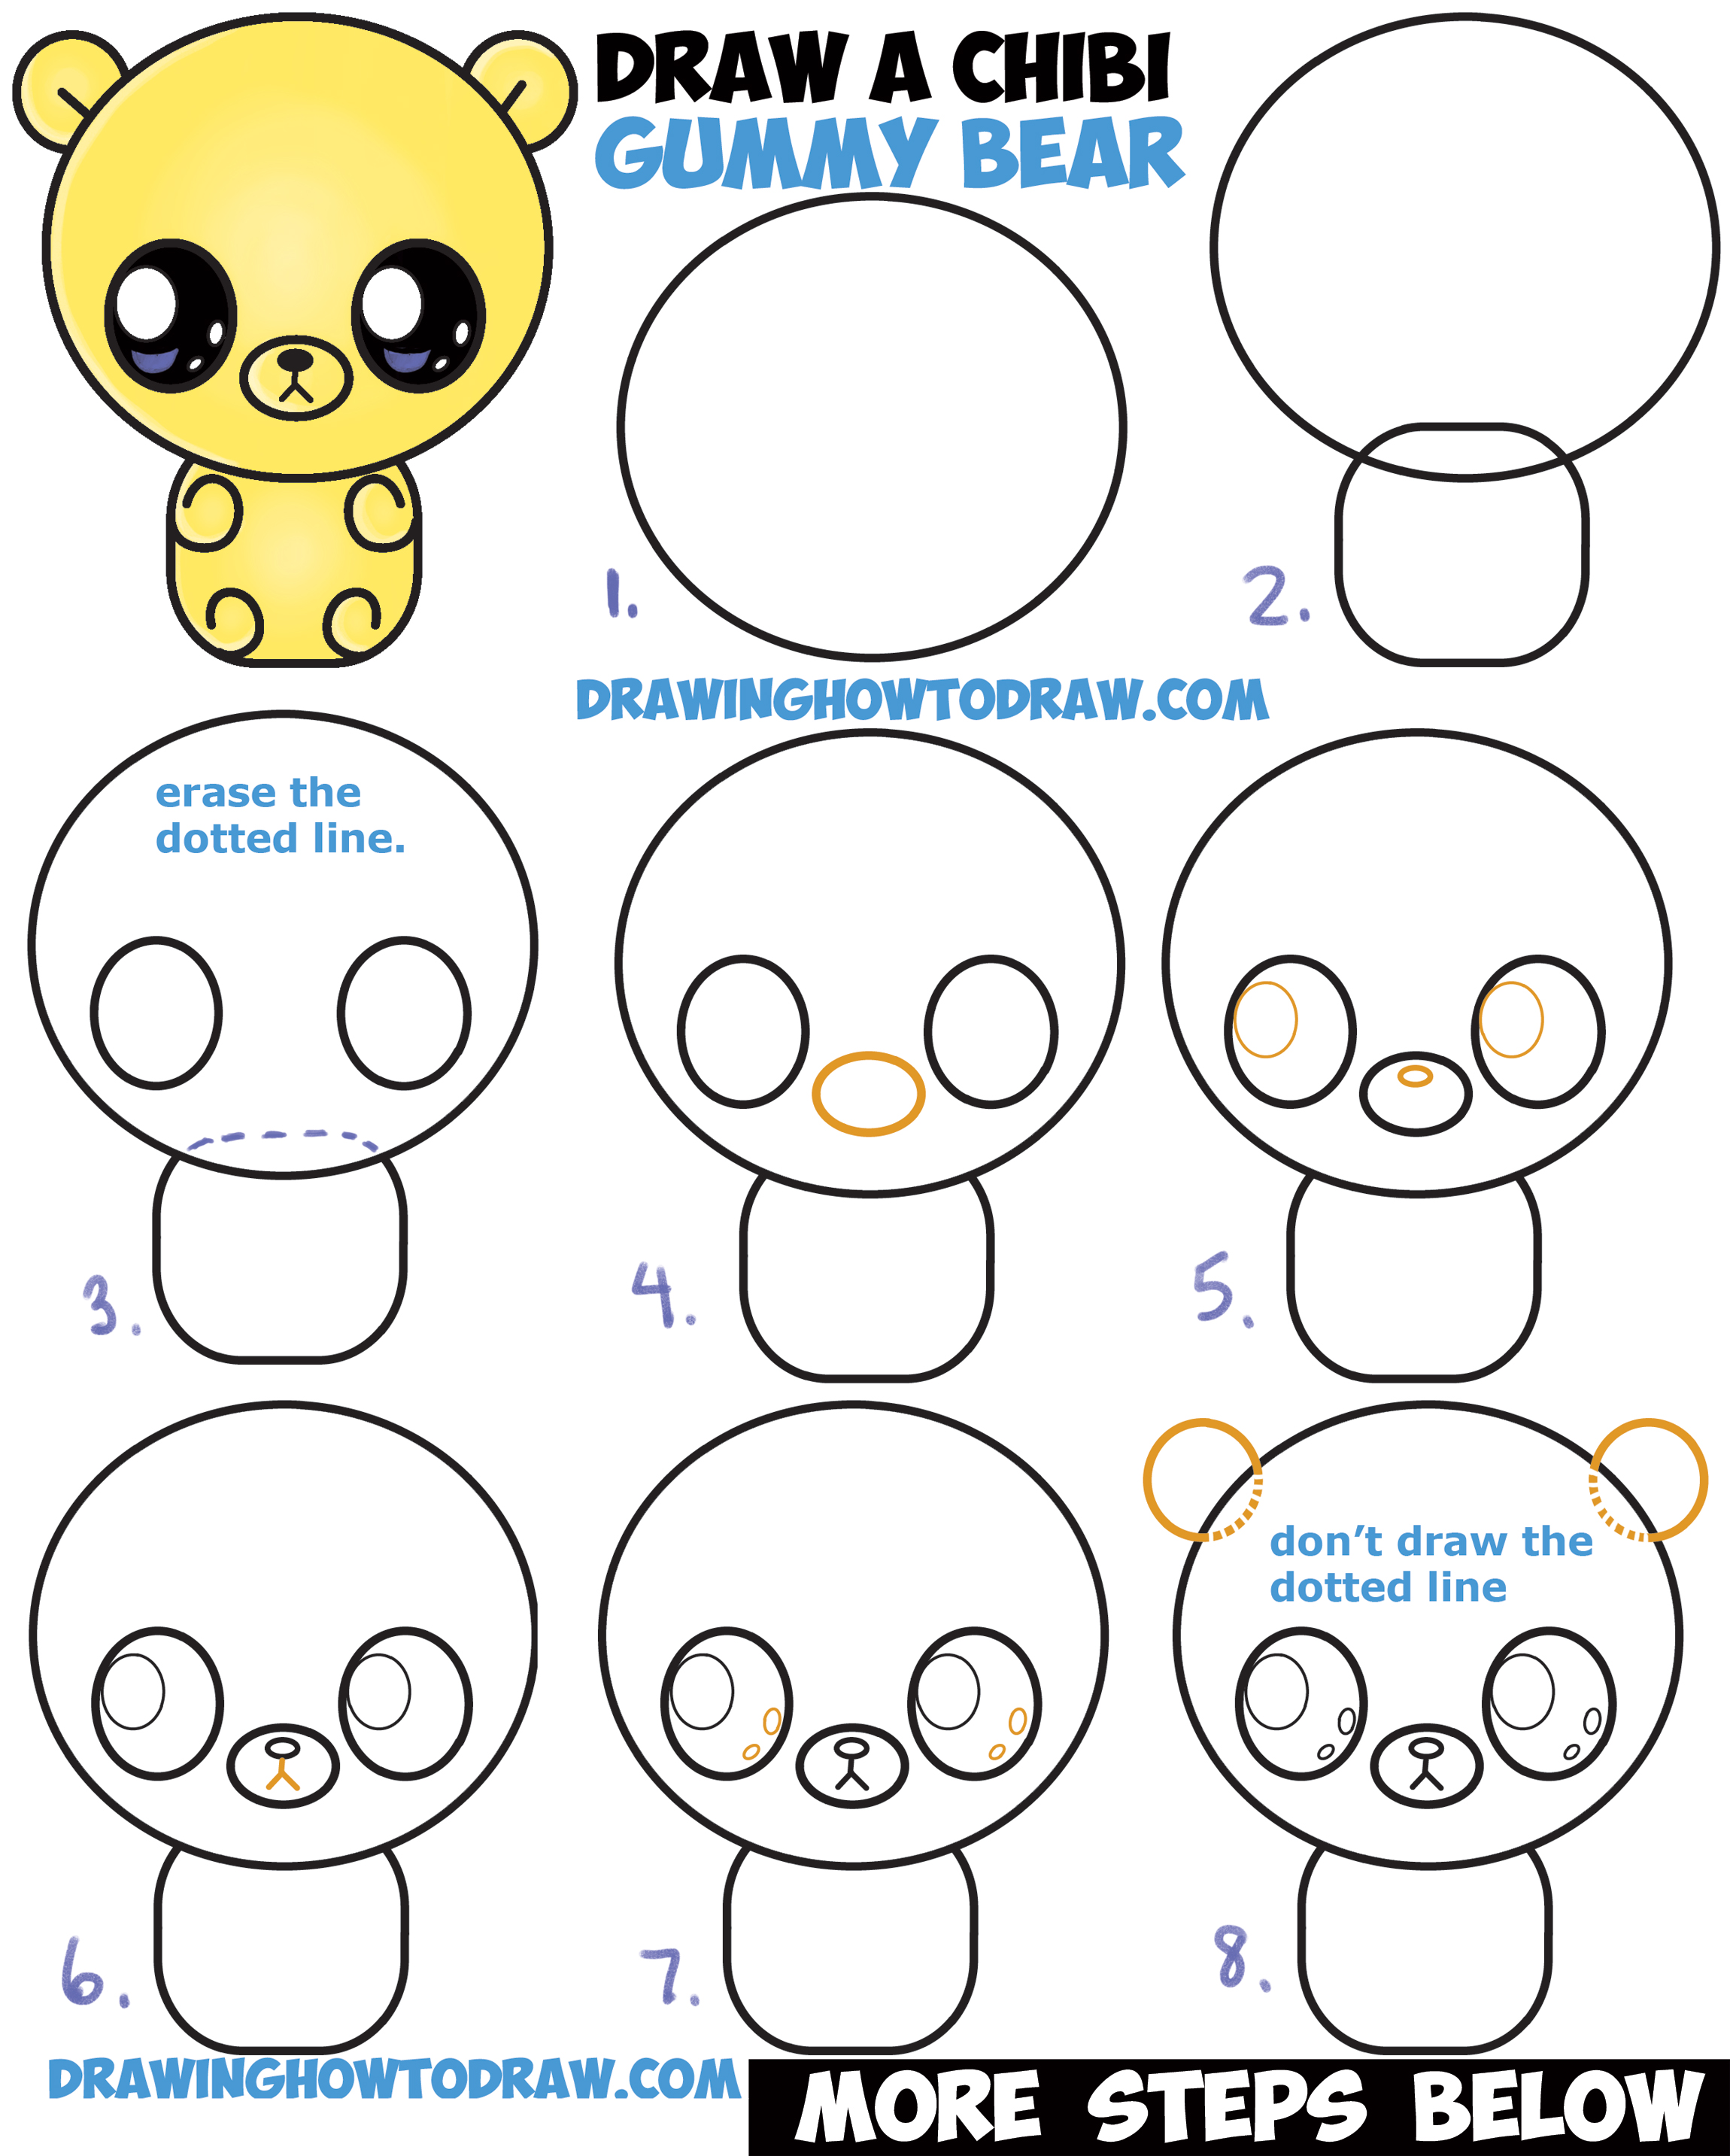 How to Draw a Cute Chibi / Kawaii / Cartoon Gummy Bear ...